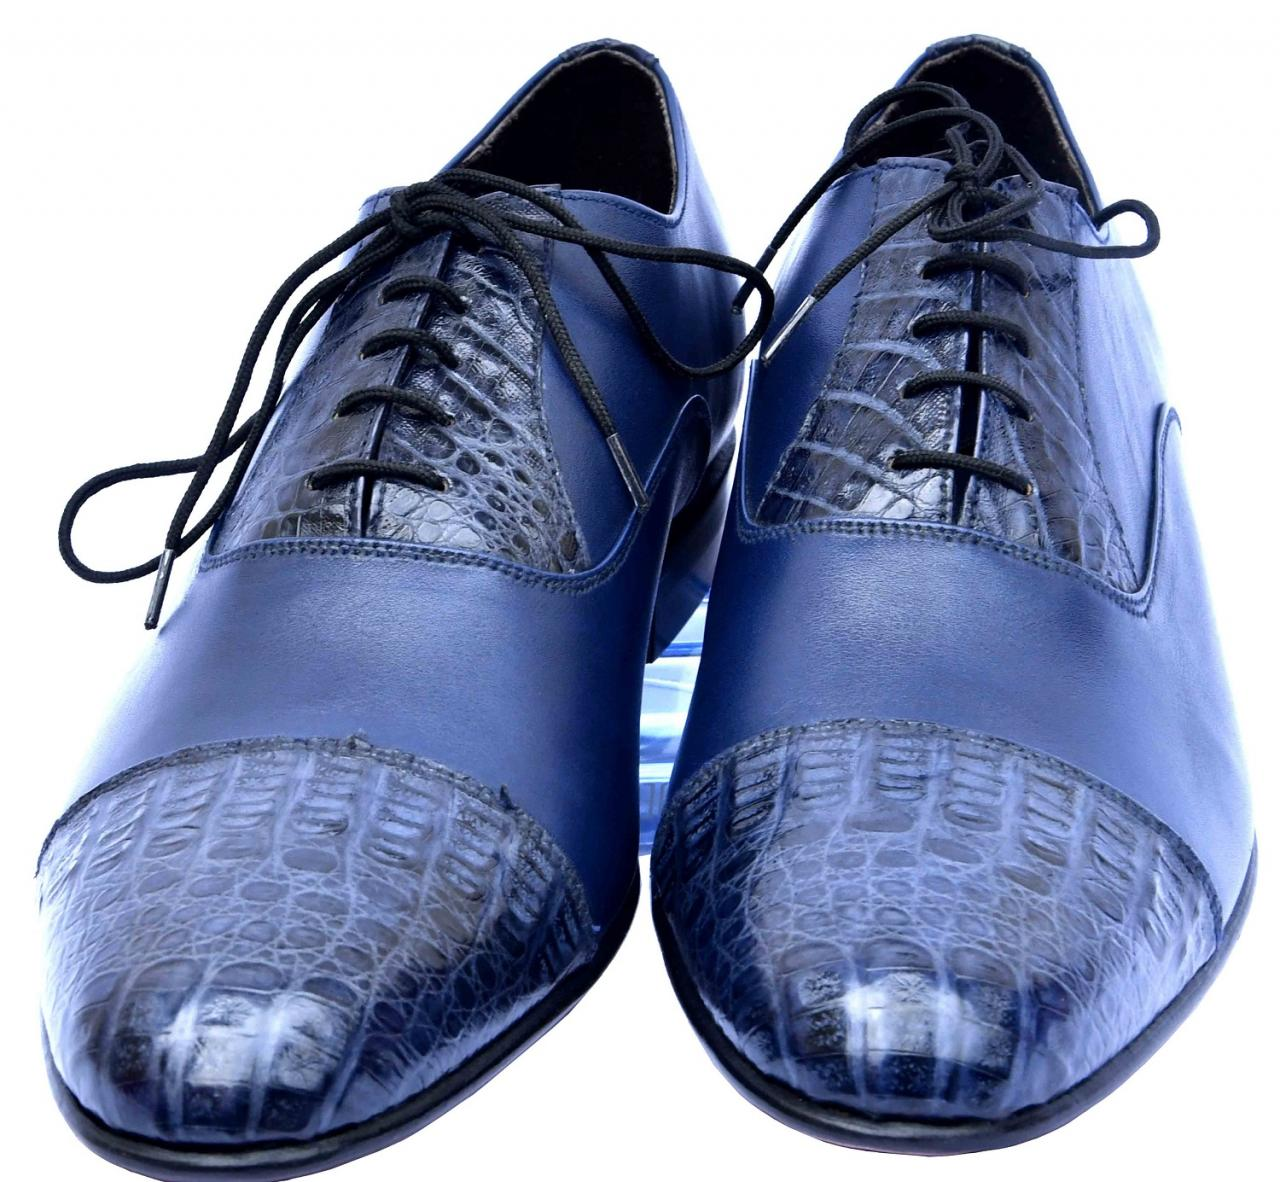 Devoted Bahama Blue Original Crocodile Leather Cap Toe & Throat Men Dress Shoes